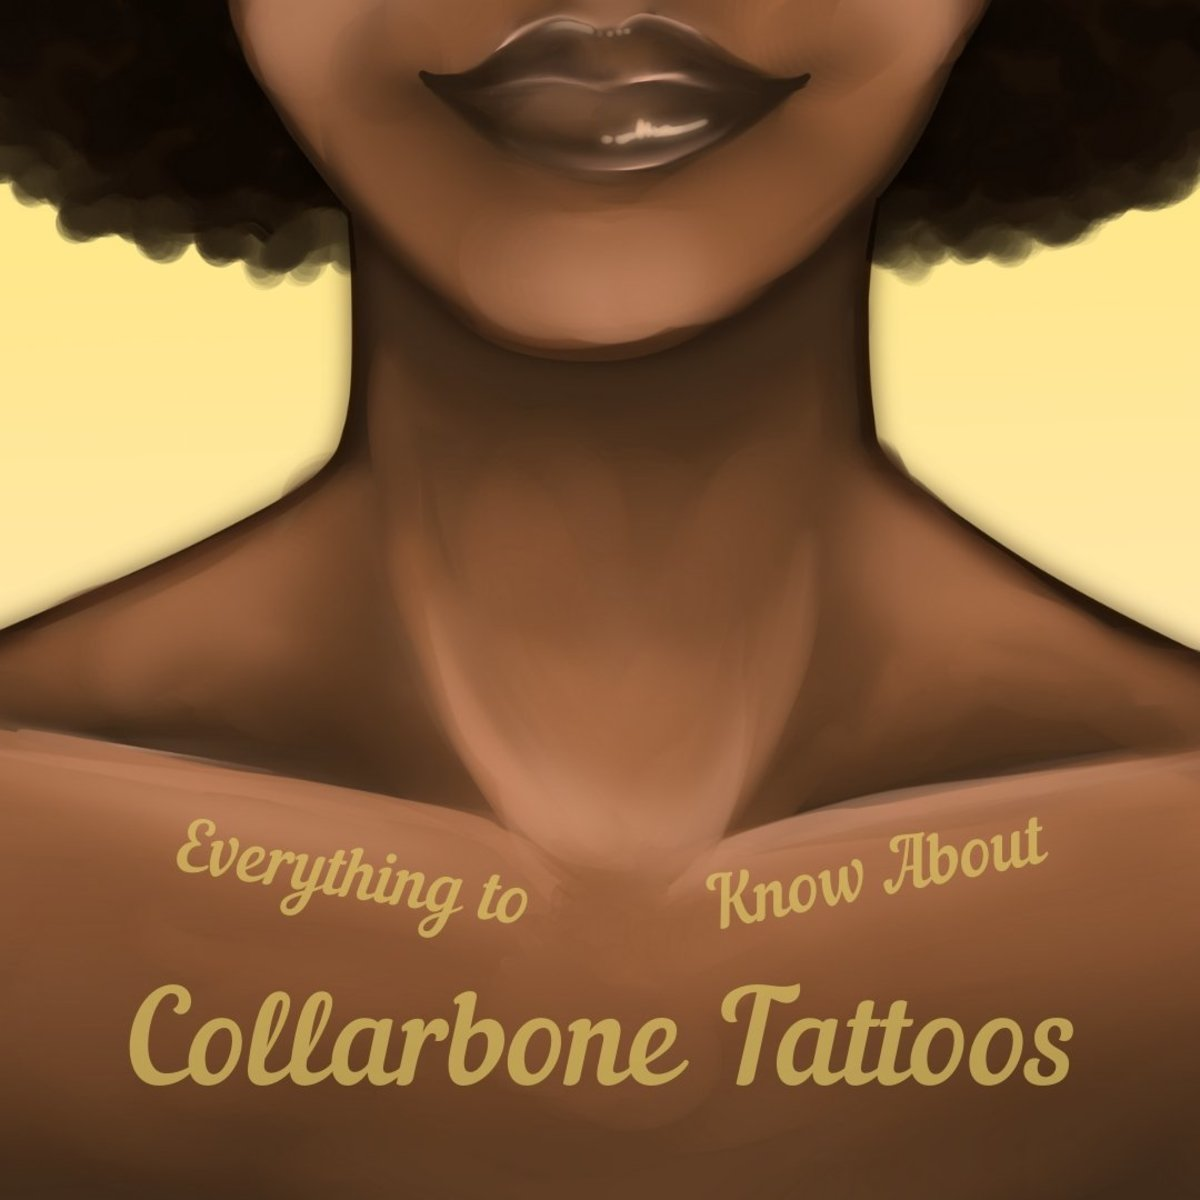 Interested in getting a collarbone tattoo but not sure what to expect? Read on to find out everything you need to know about getting one!